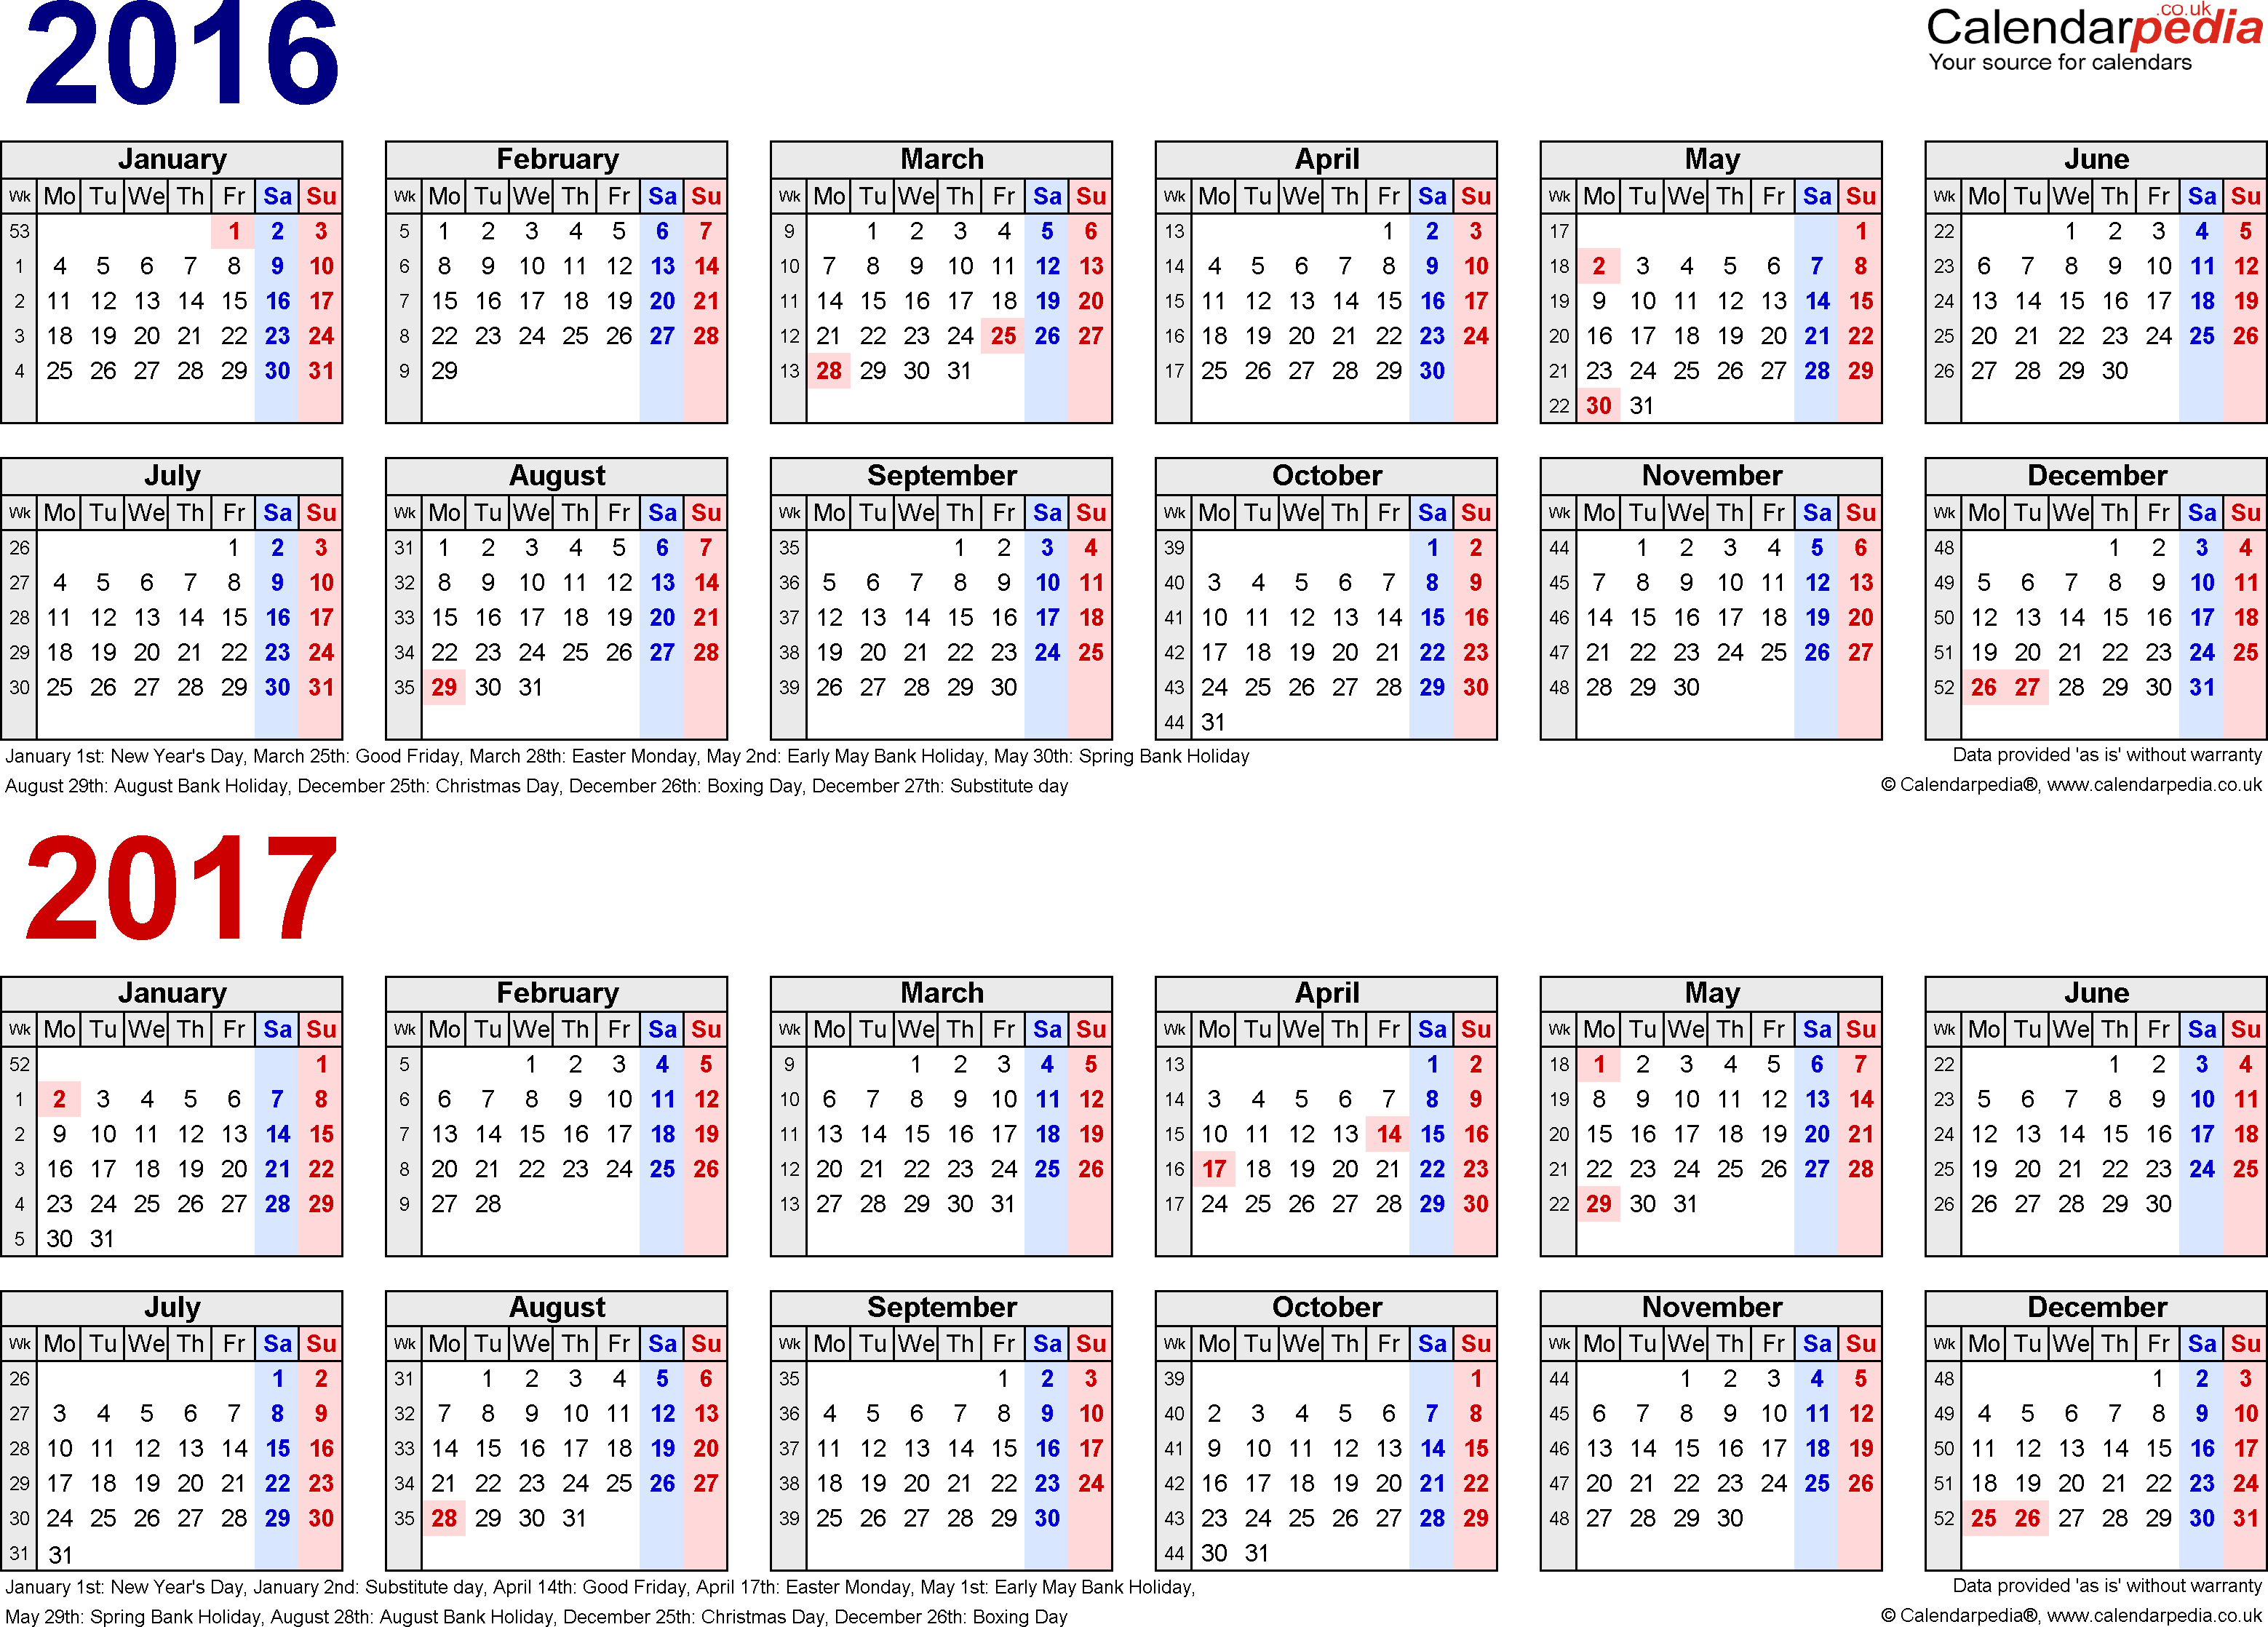 Two Year Calendar 2016 2017 Pdf Templates on holidays in trinidad and tobago